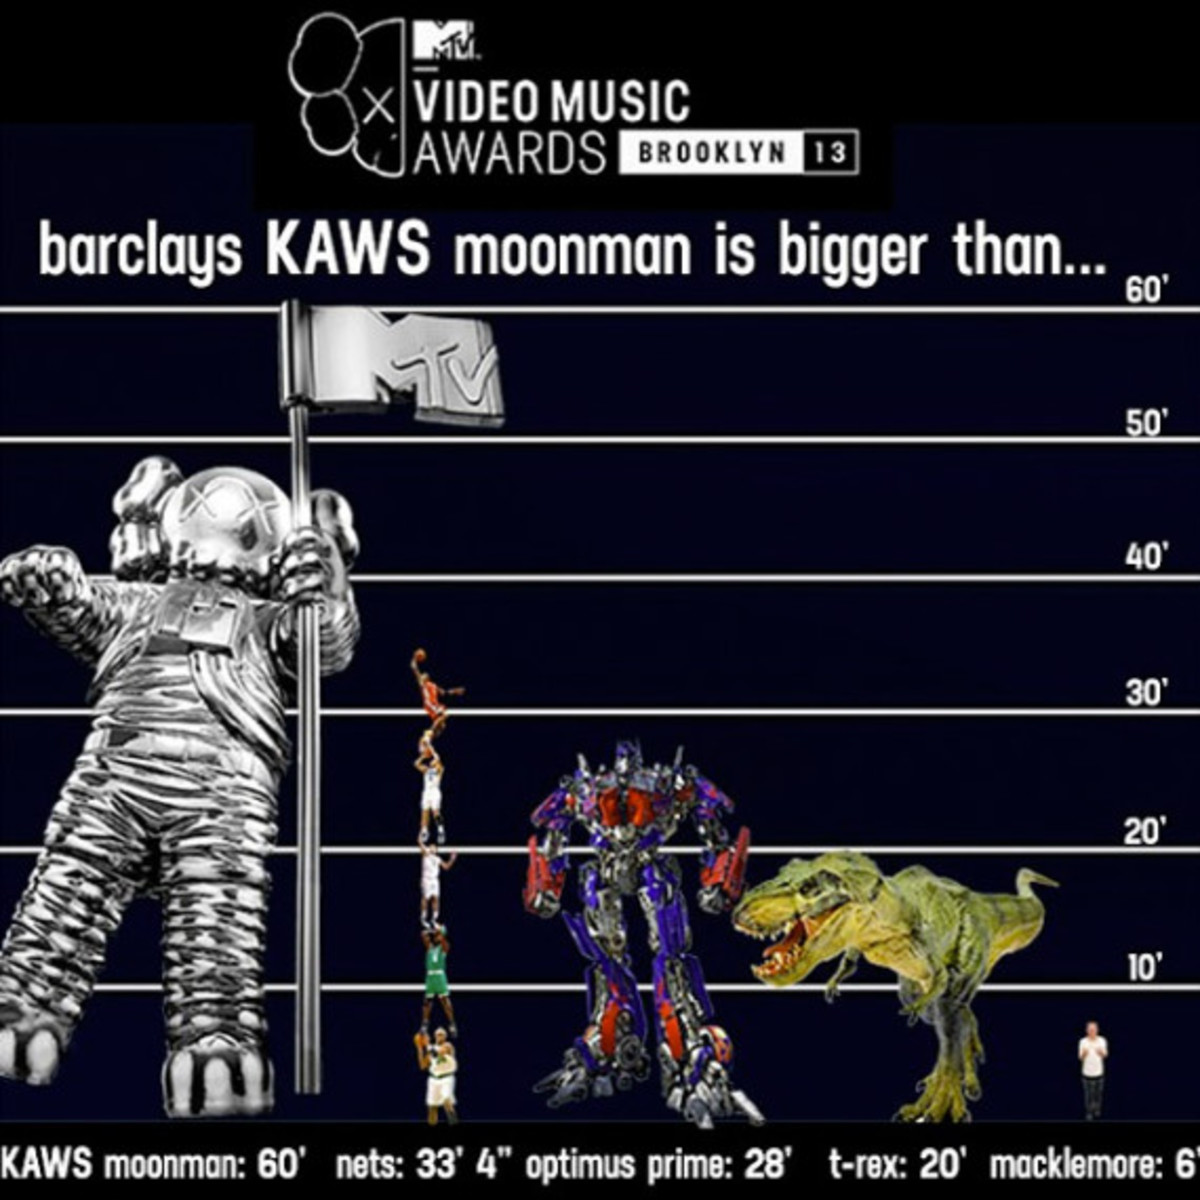 2013 MTV Video Music Awards Unveiled 60-Foot Moonman Statue by KAWS - 5